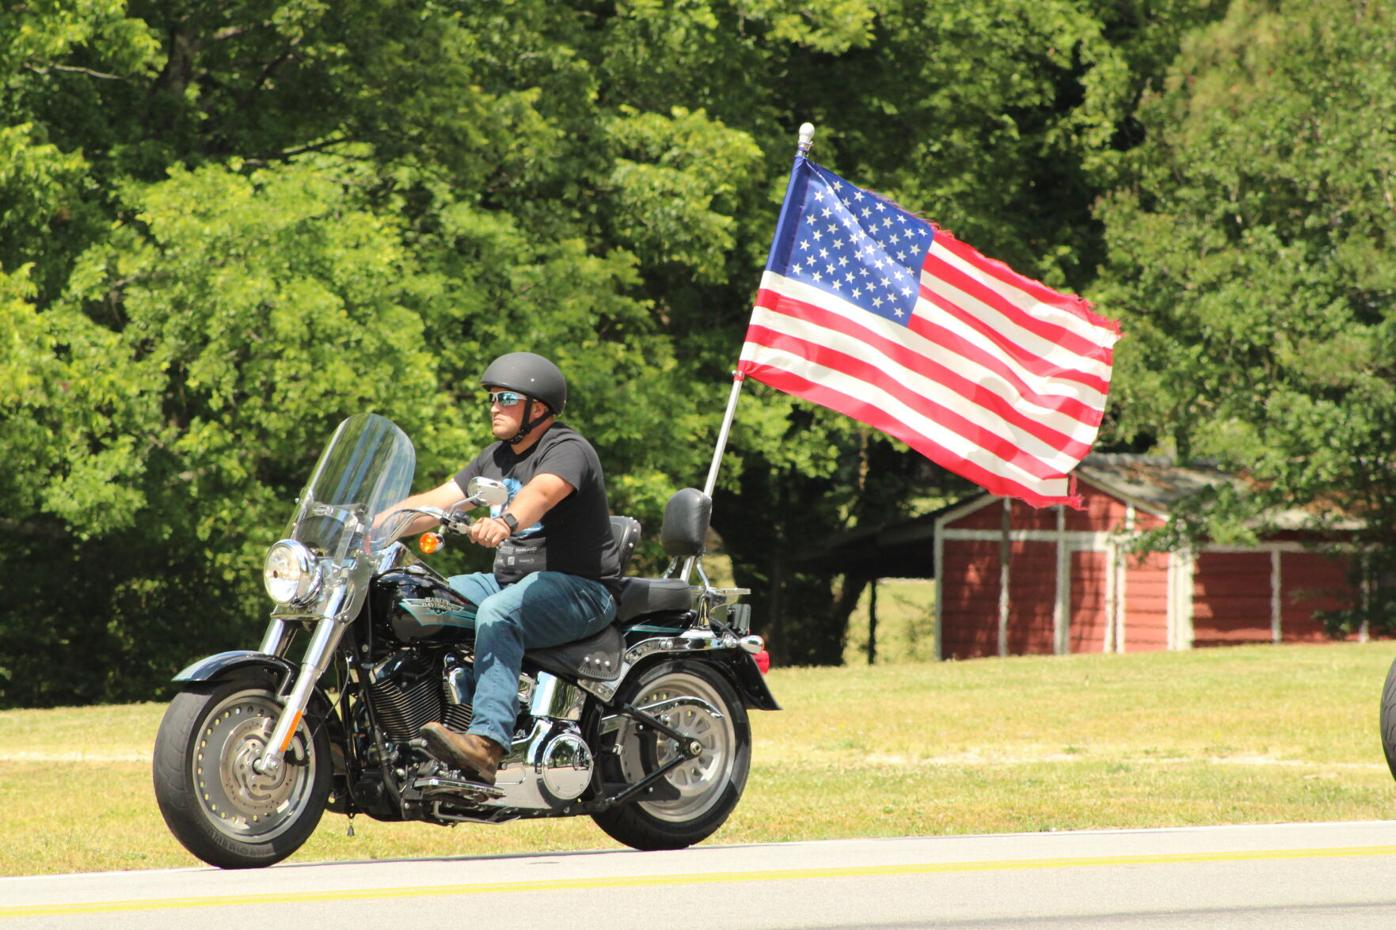 Motorcyclist with American Flag